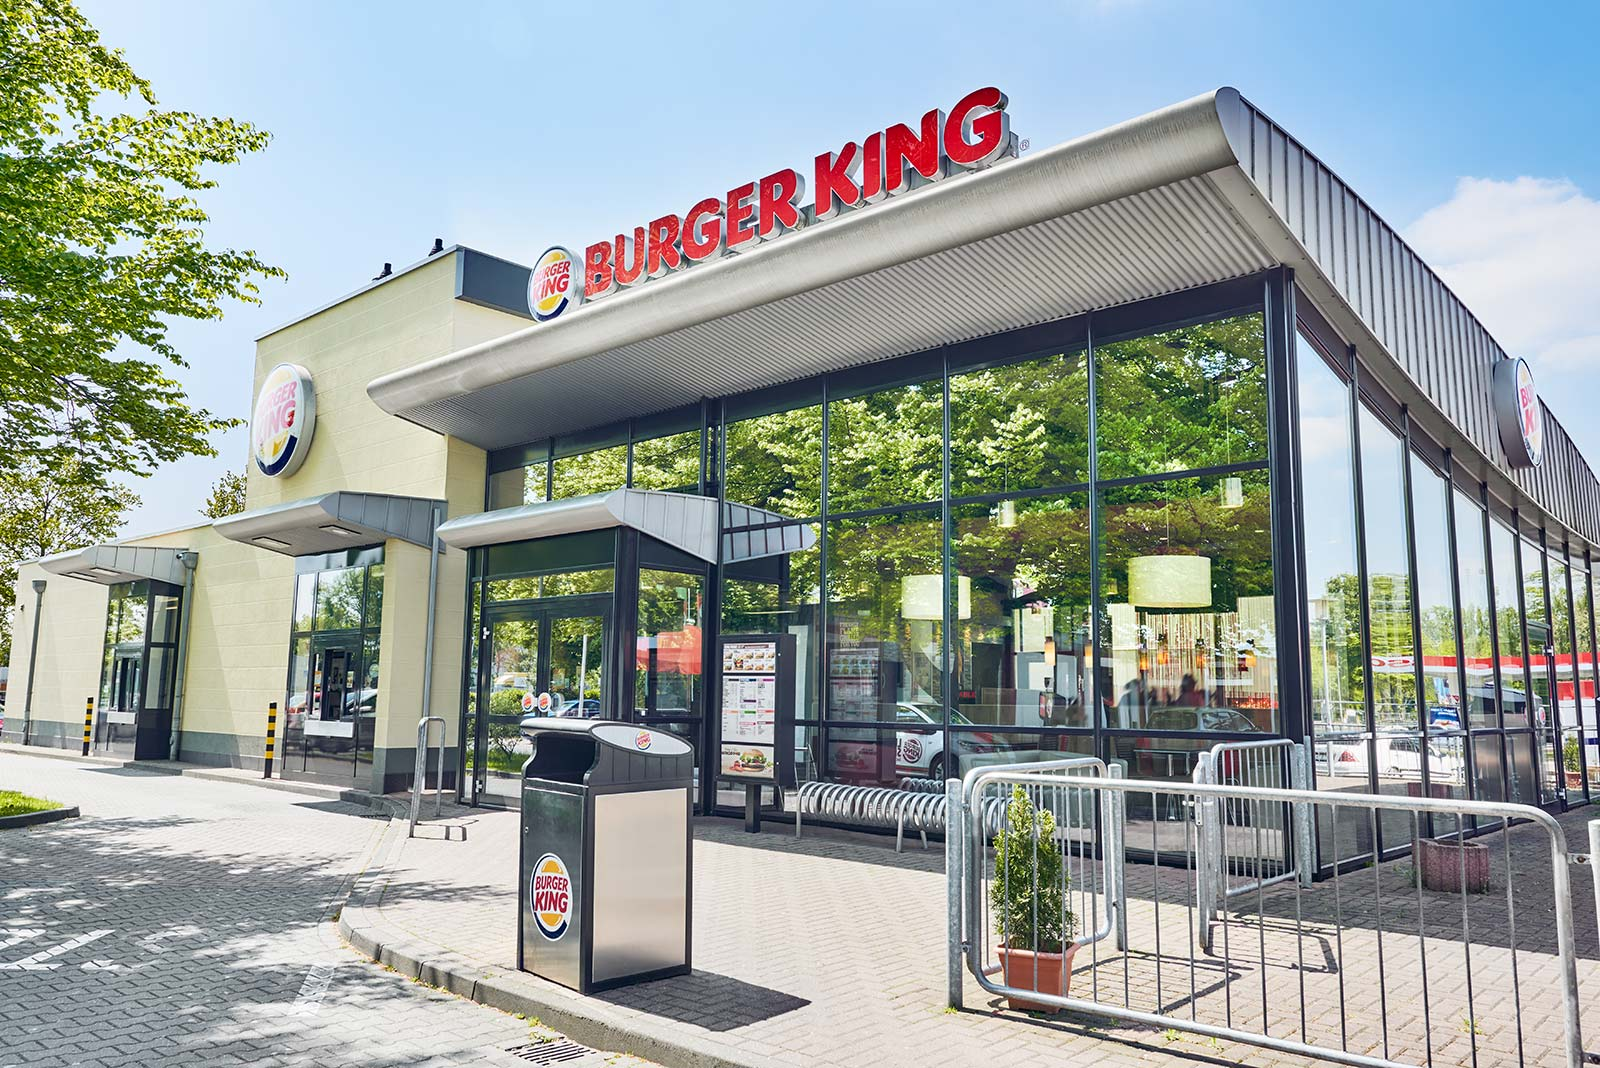 Immobilie in Gelsenkirchen: Fastfood-Restaurant (Burger King)